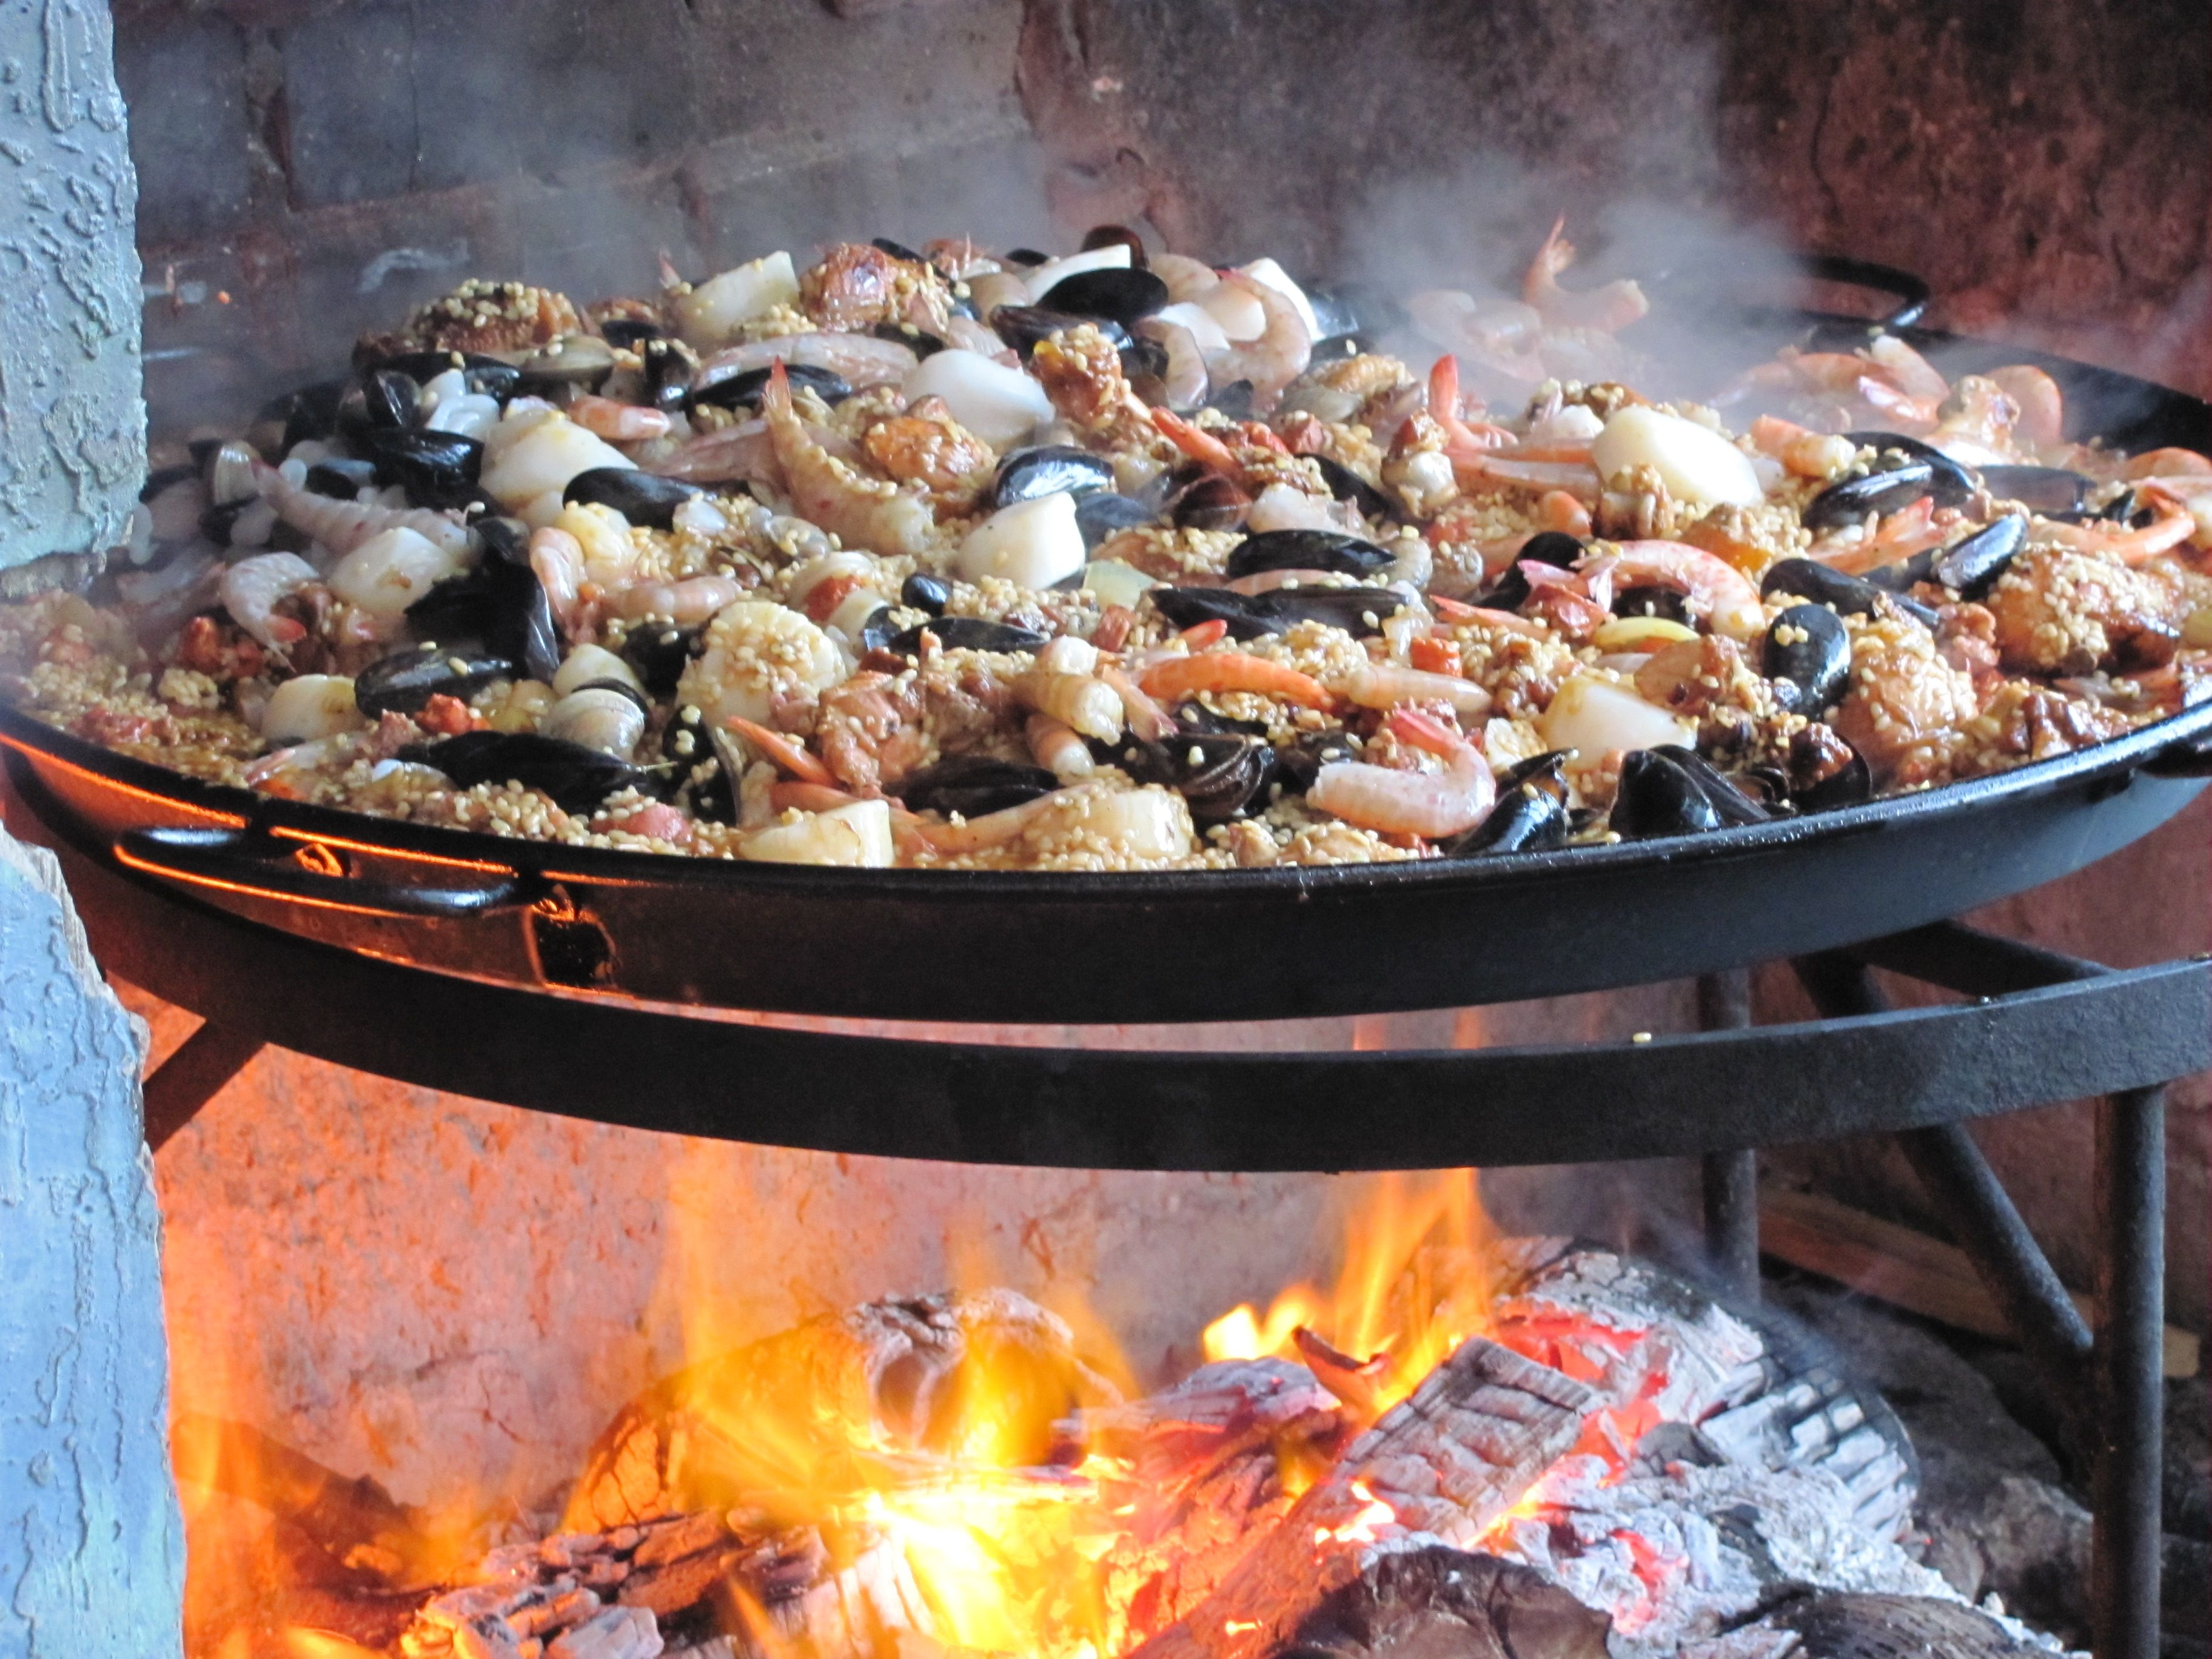 Open fire cooked paellathis would work great with our